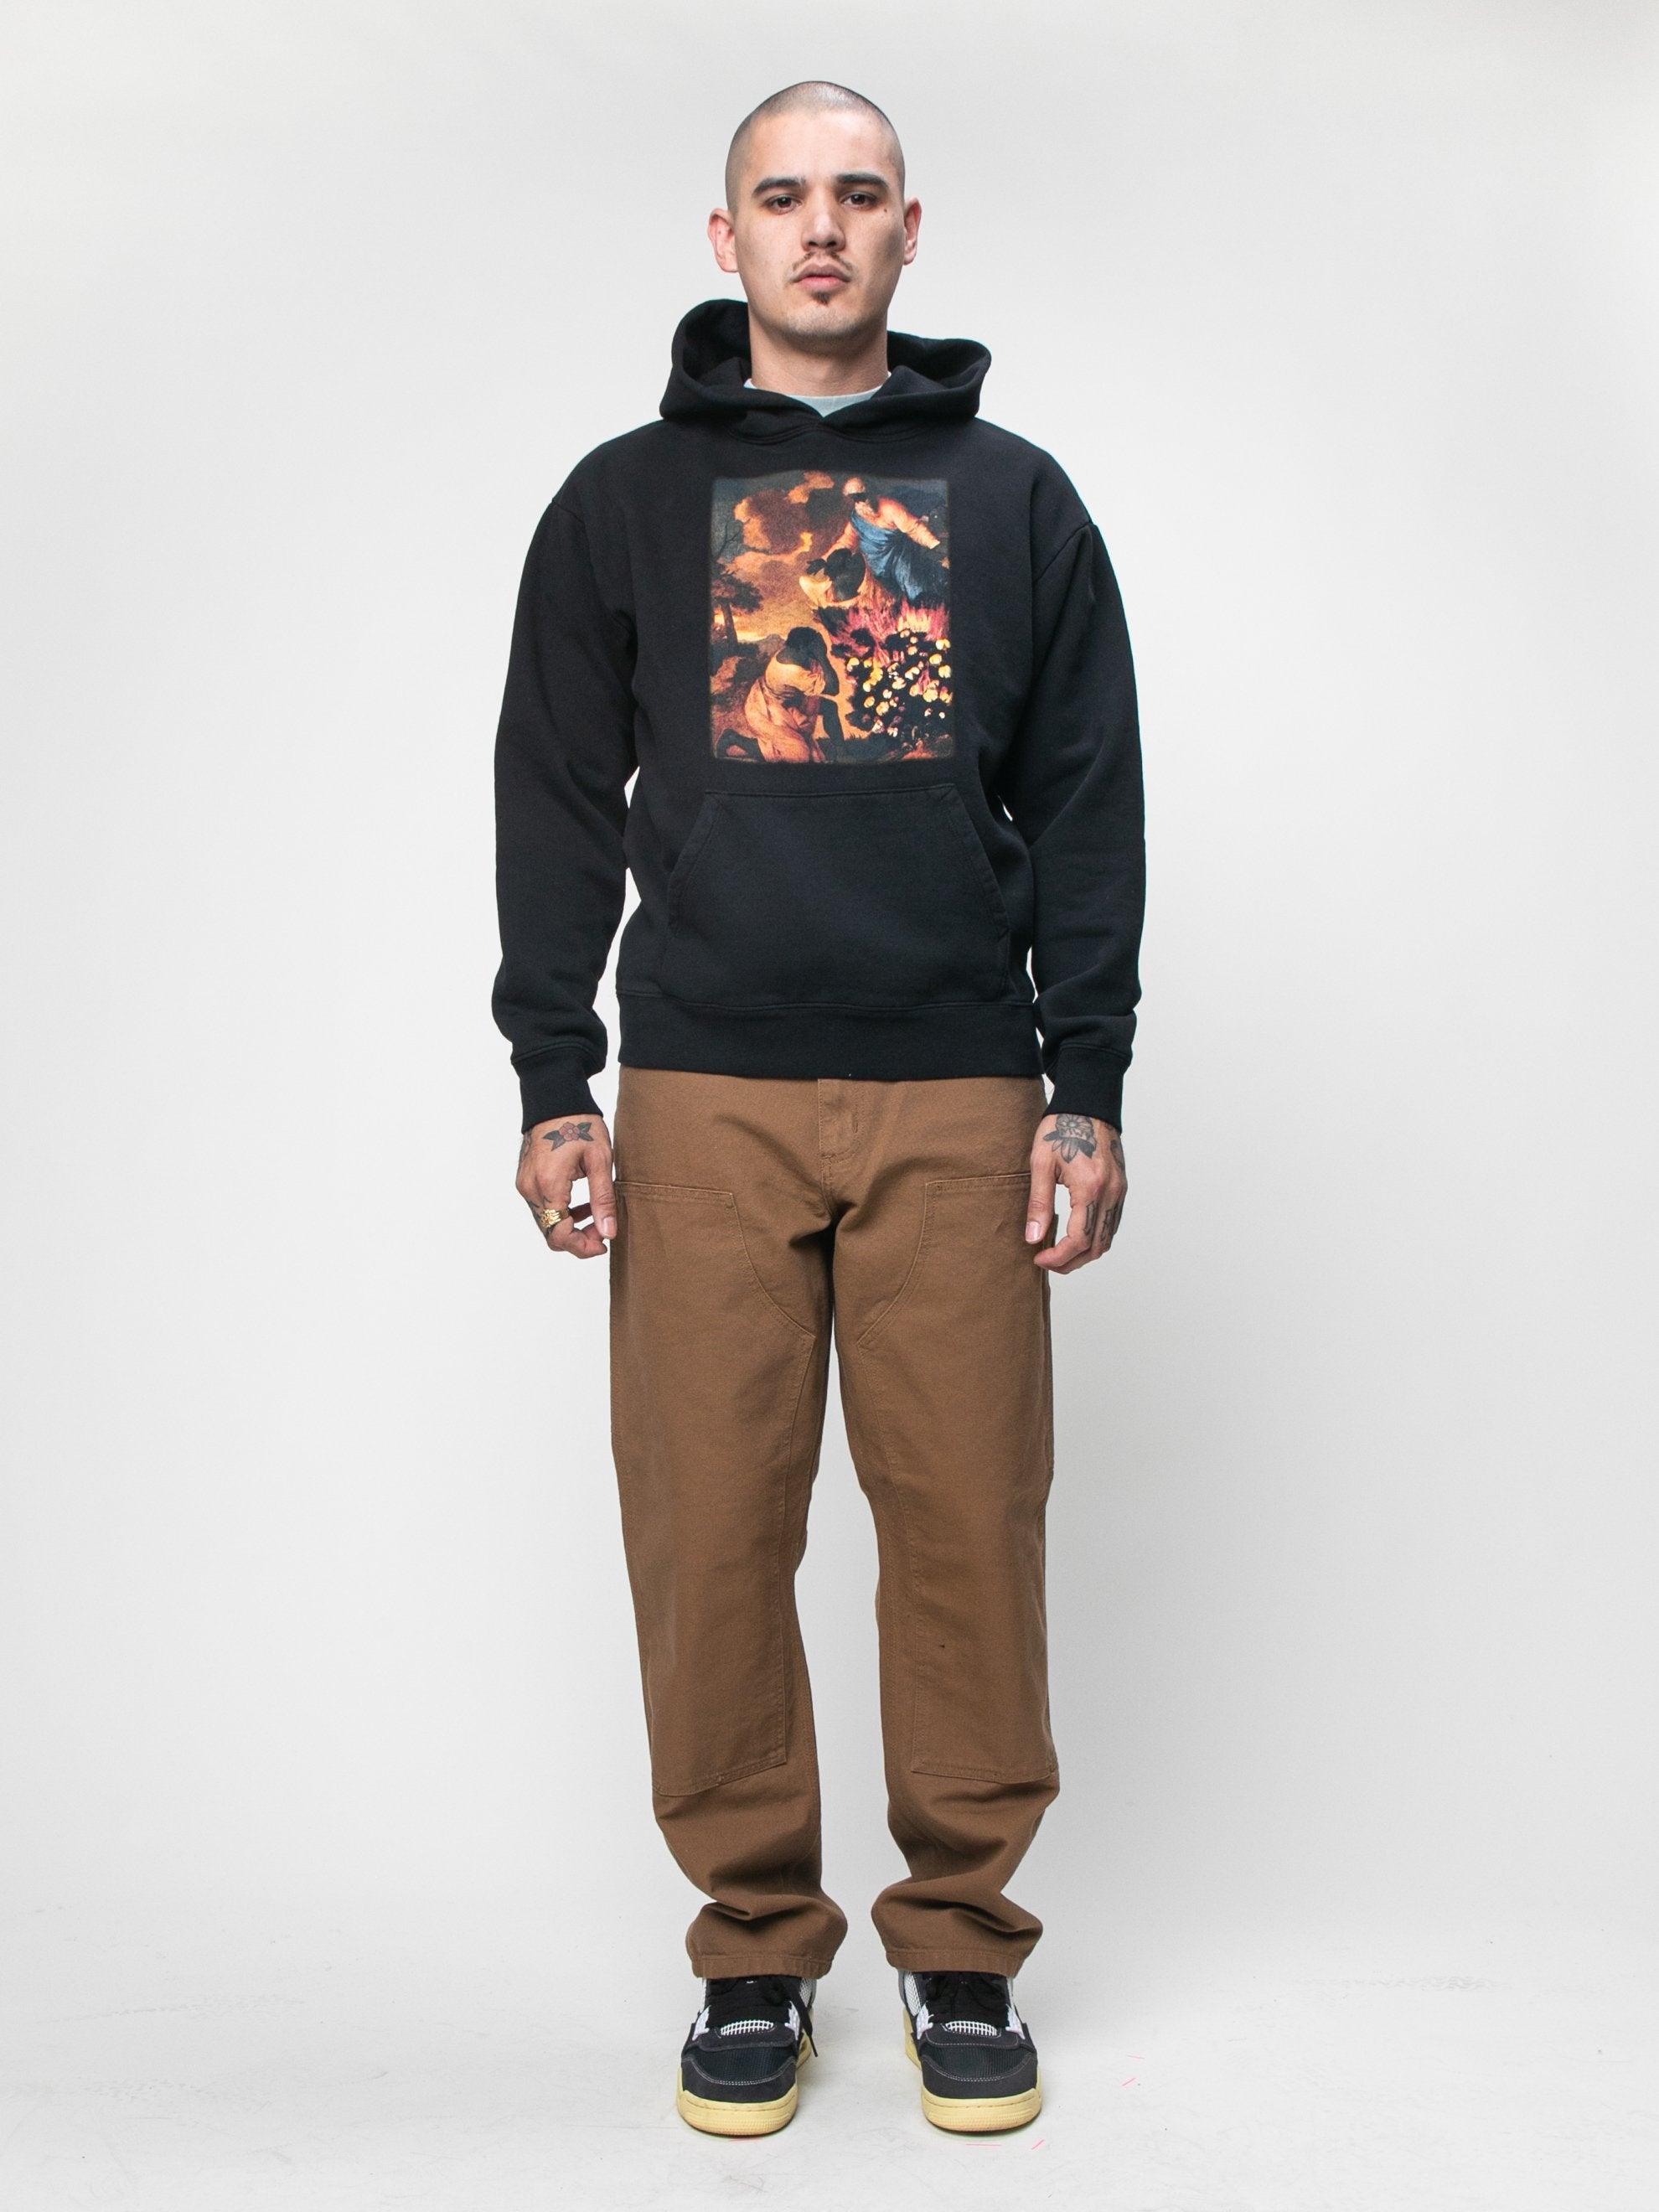 Black Denim Tears x Eco Graphic Hooded Sweatshirt 3